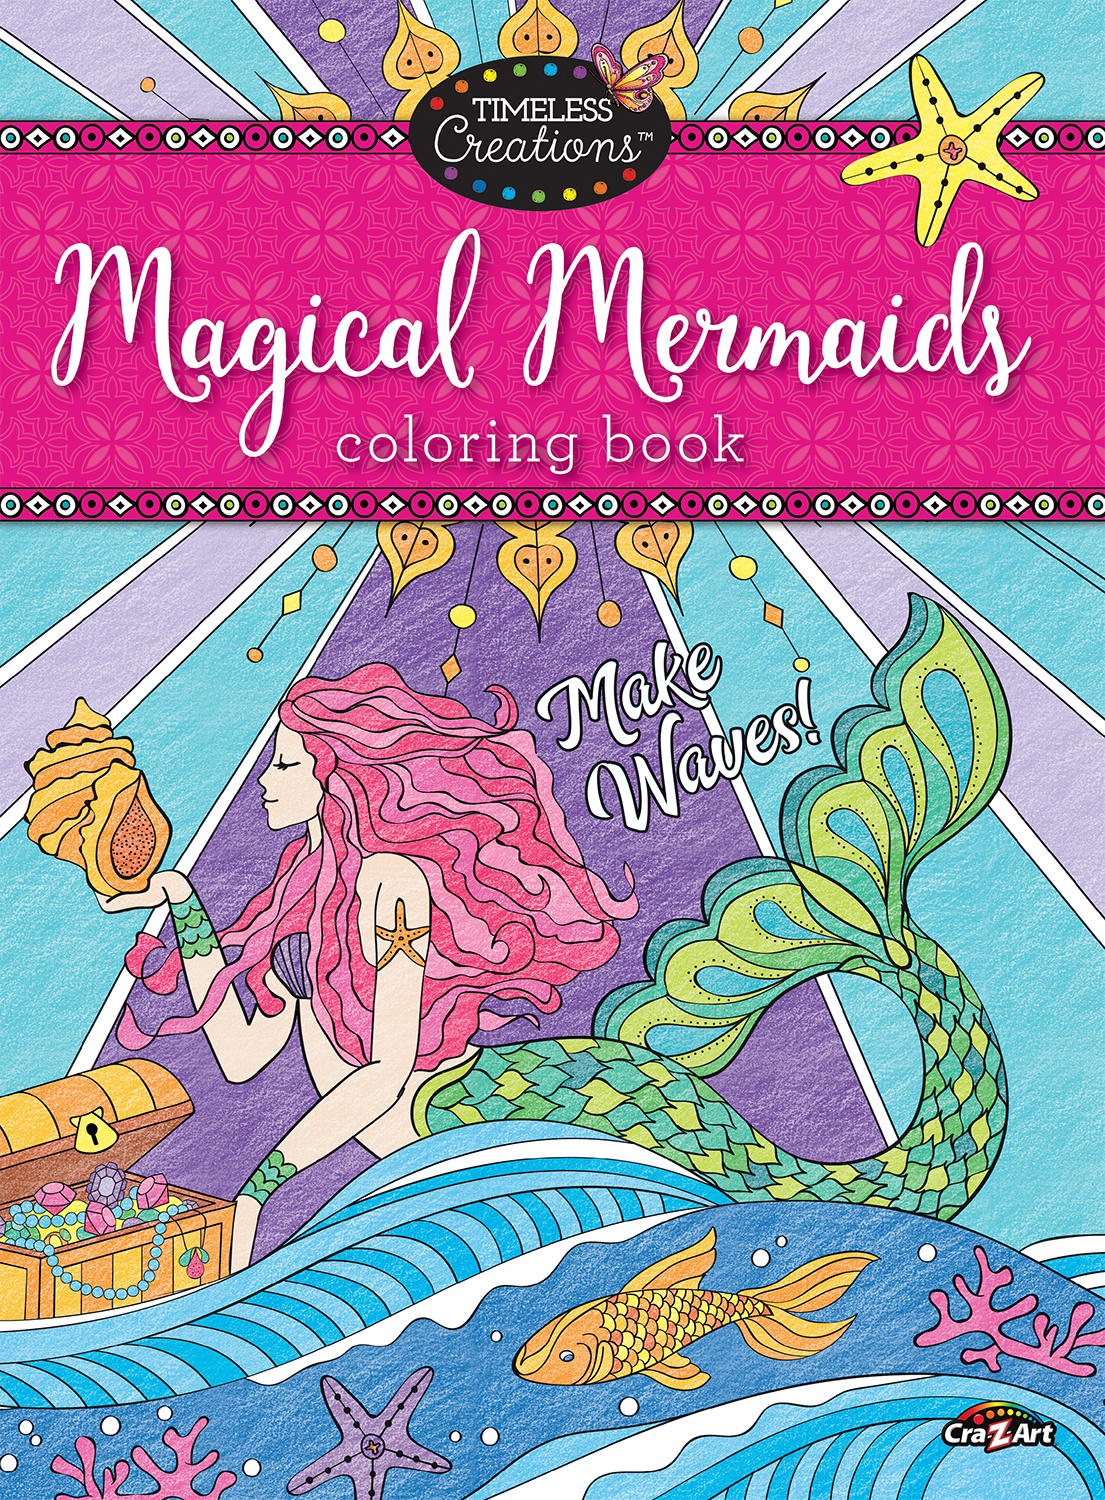 - Cra-Z-Art Timeless Creations Coloring Book, Magical Mermaids